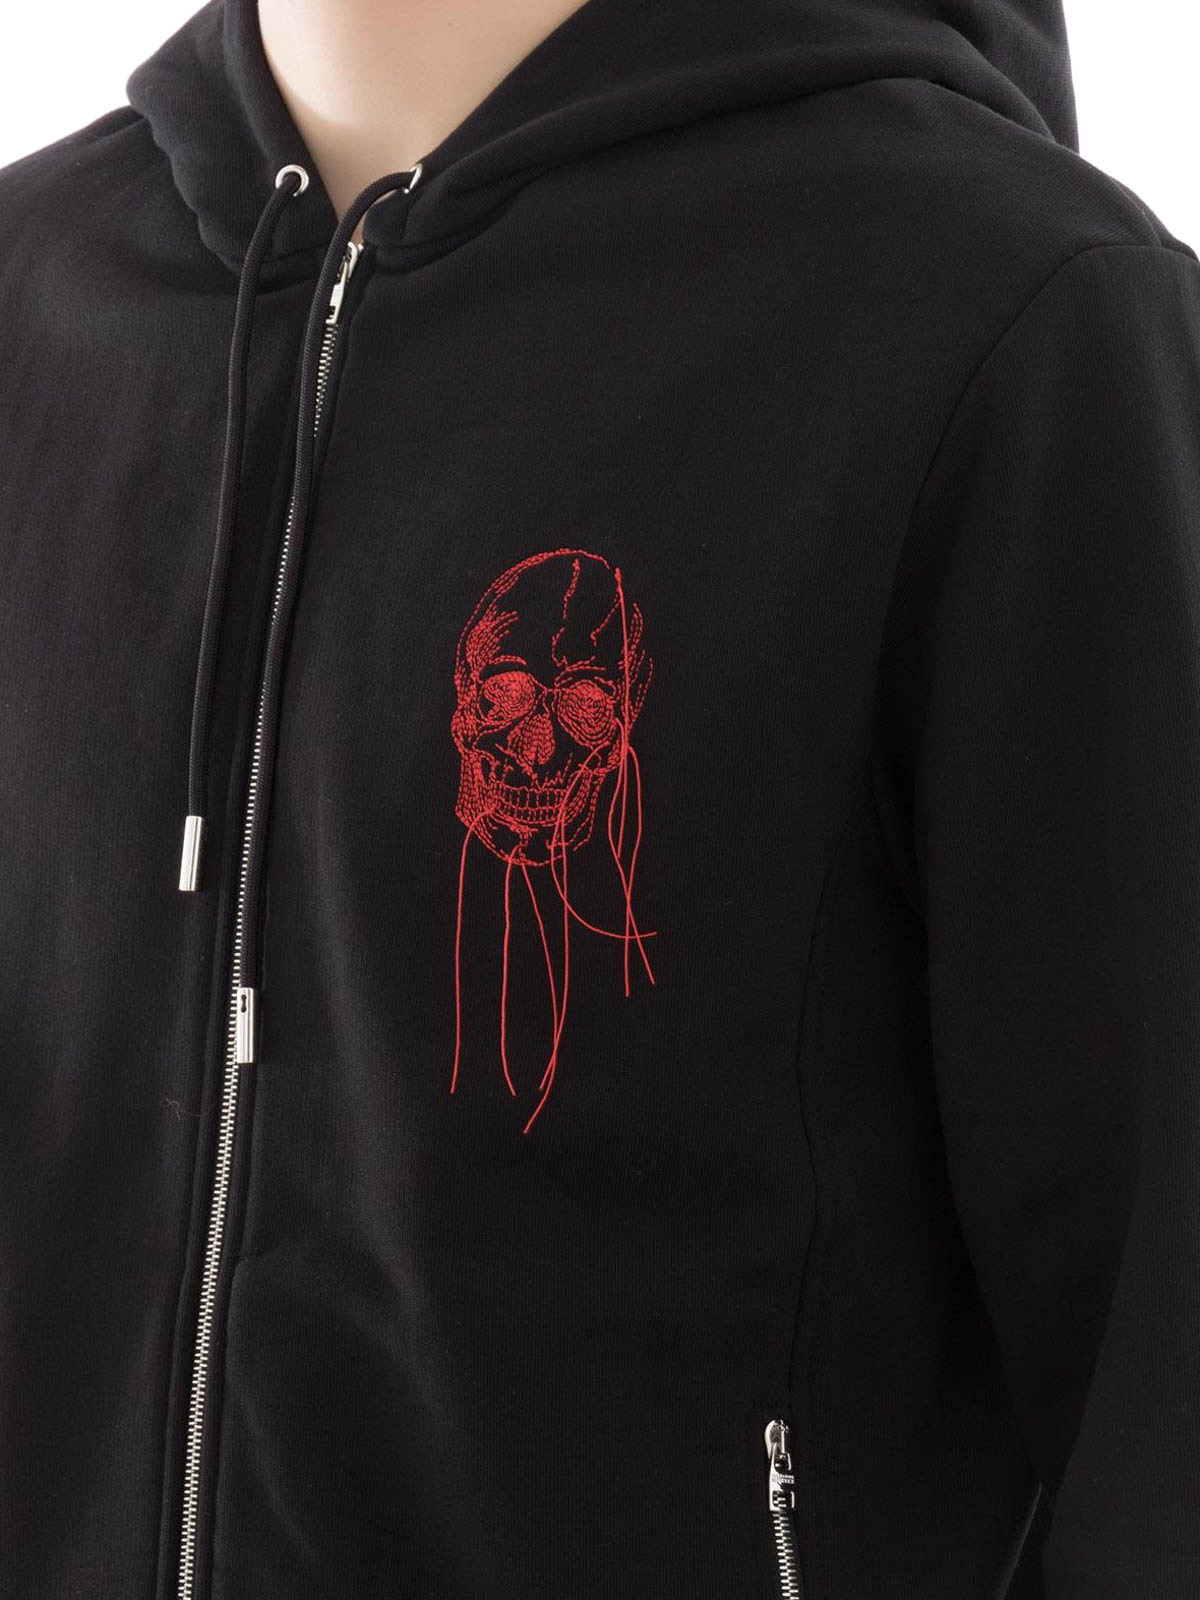 Alexander Shop Skull Online Mcqueen Hoodie Embroidered Cotton aaXqZ8